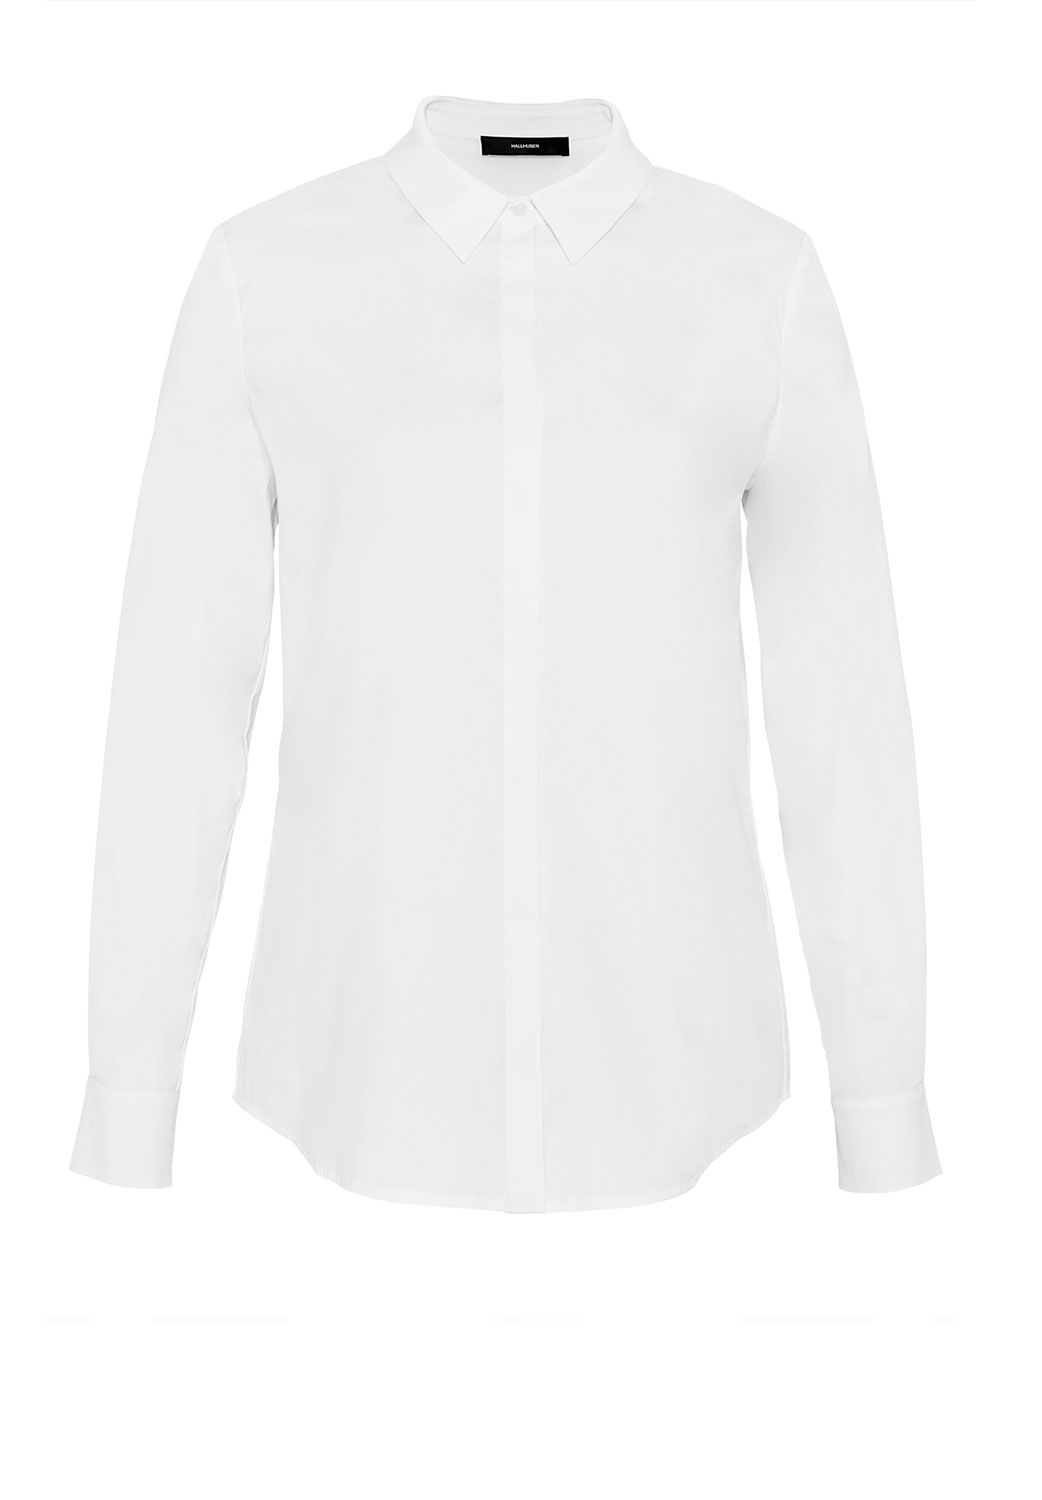 Hallhuber Shirt with concealed button placket, White